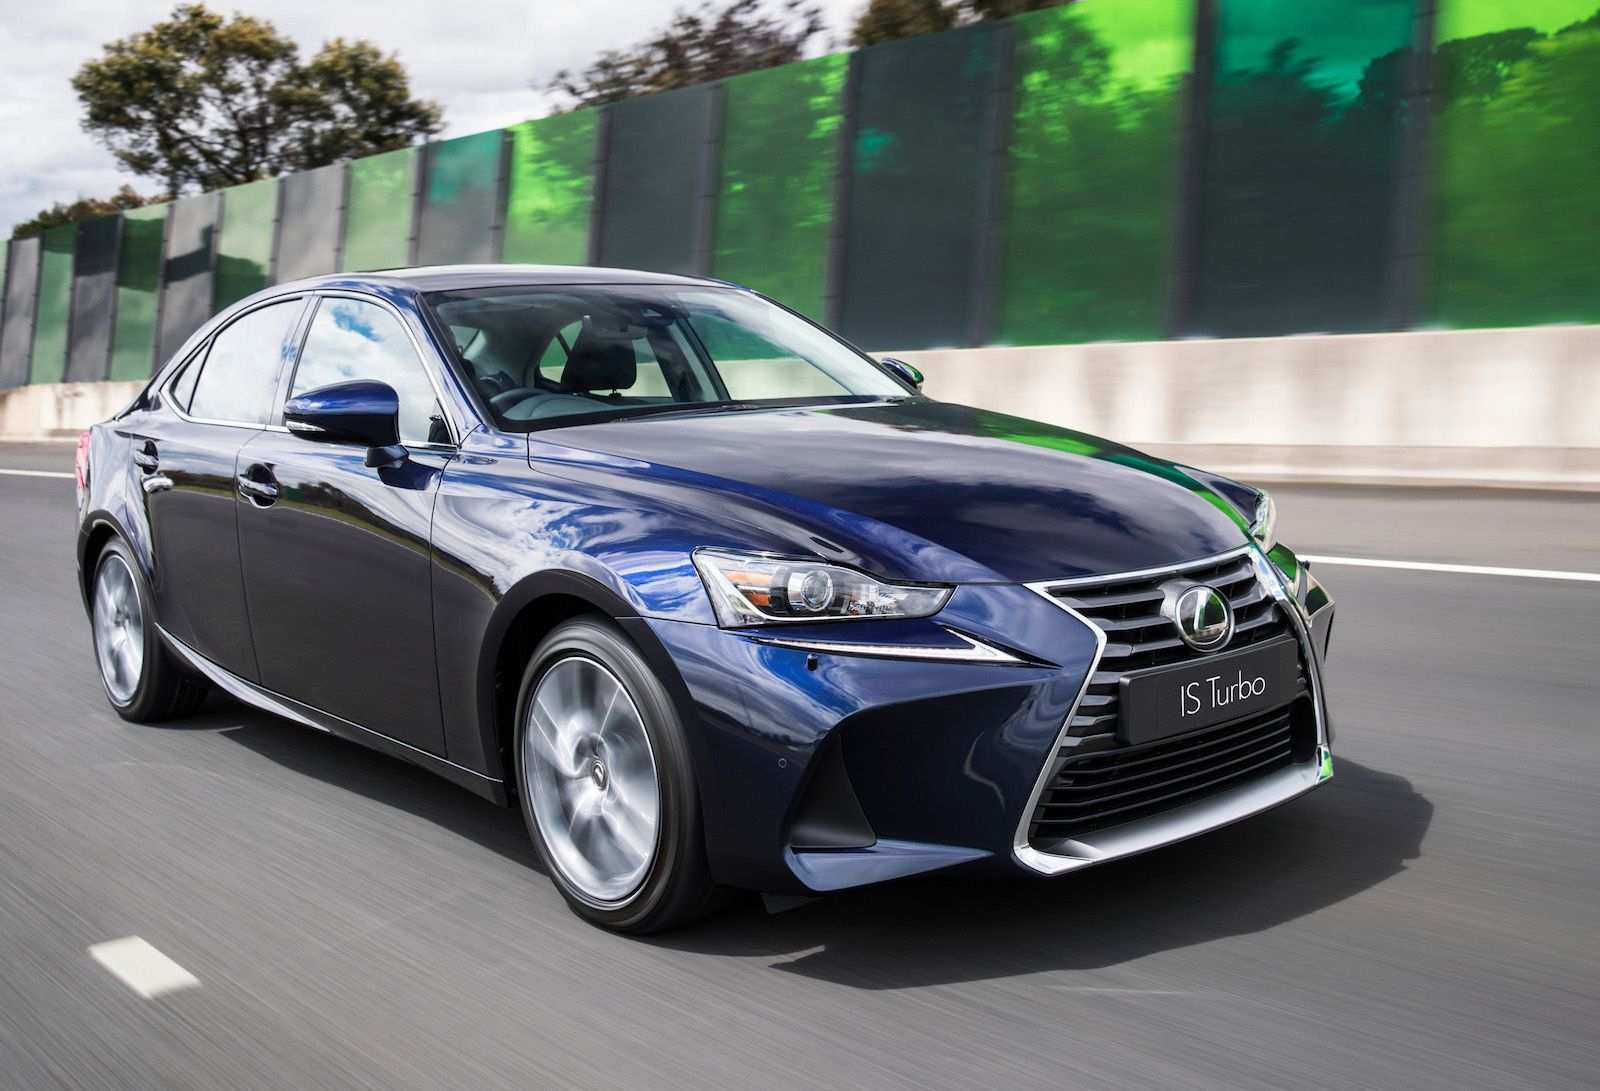 46 Great Xe Lexus Es 2020 Picture with Xe Lexus Es 2020